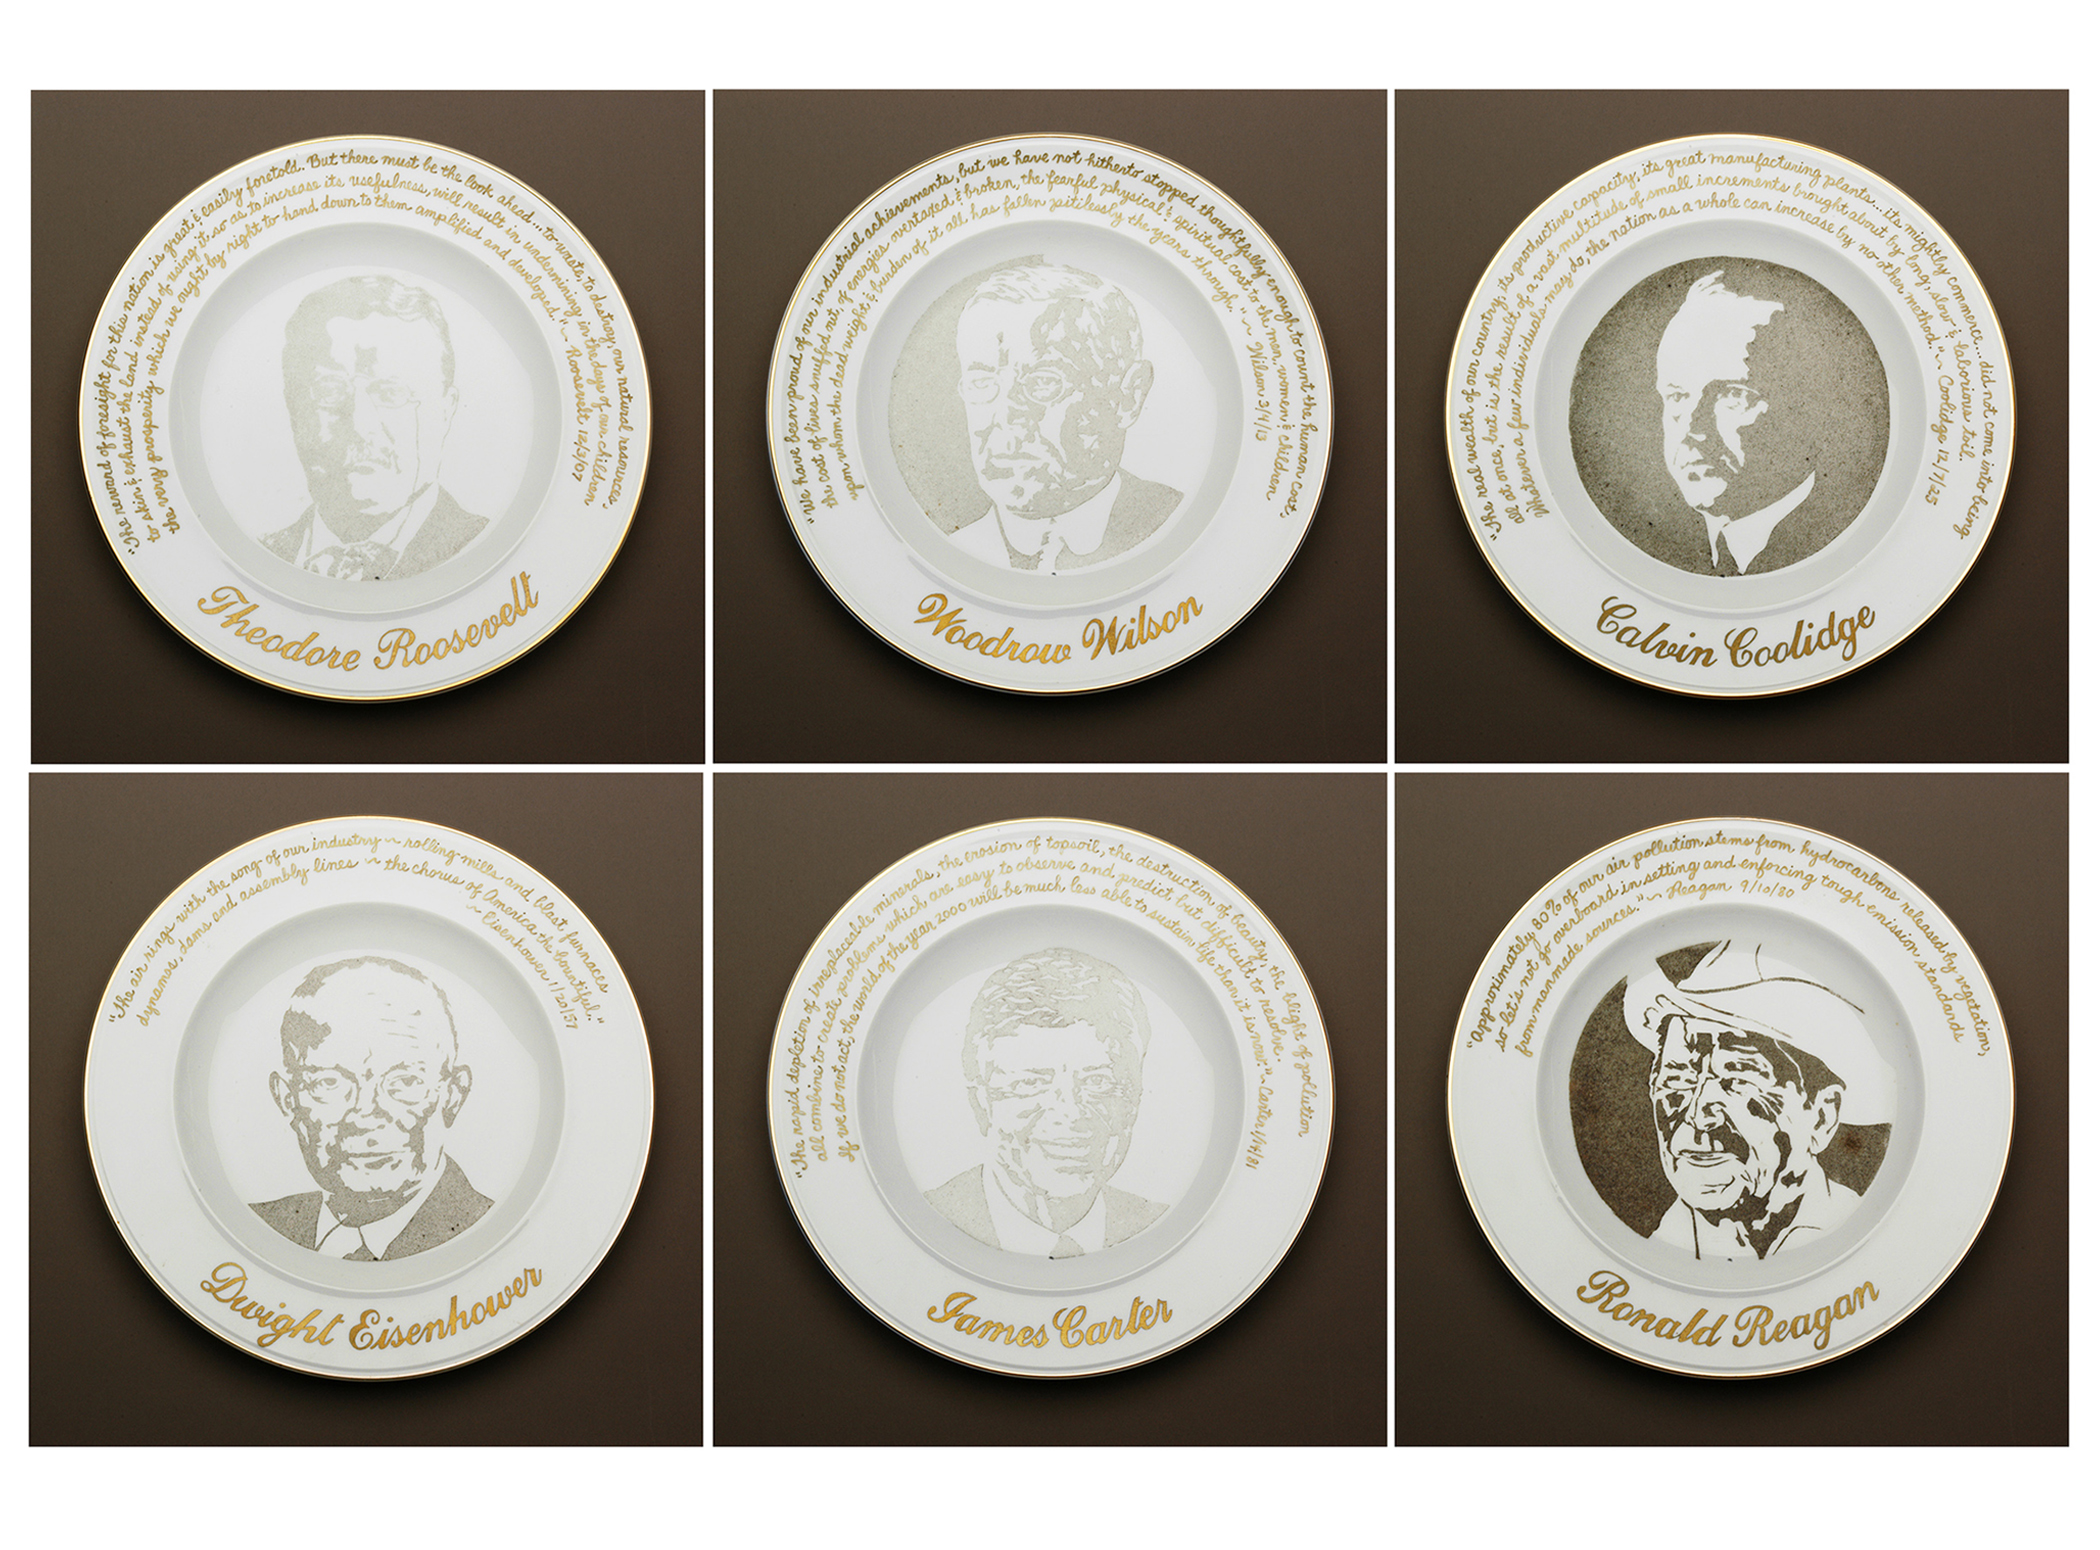 """Presidential Commemorative Smog Plates"" (1992) Smog (particulate matter) on porcelain plates with their quotations about the environment and industry written in gold. The stenciled plates were left out longer, depending on the president's environmental records."